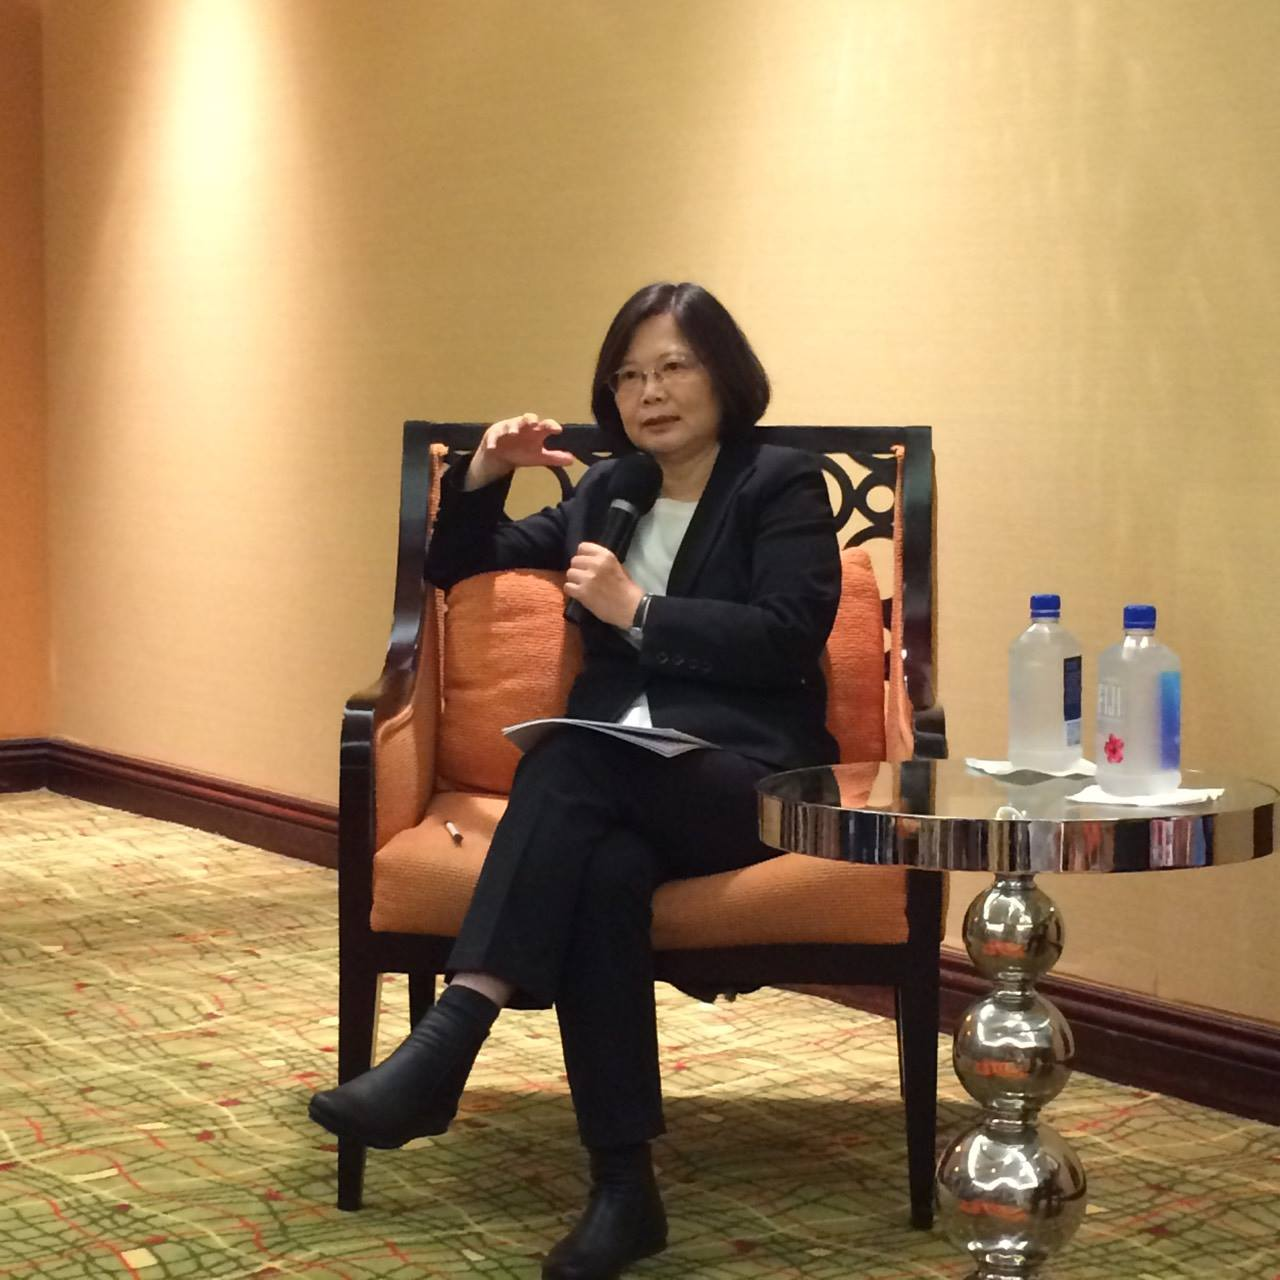 State Dept hosts rare meeting for Taiwan's opposition leader